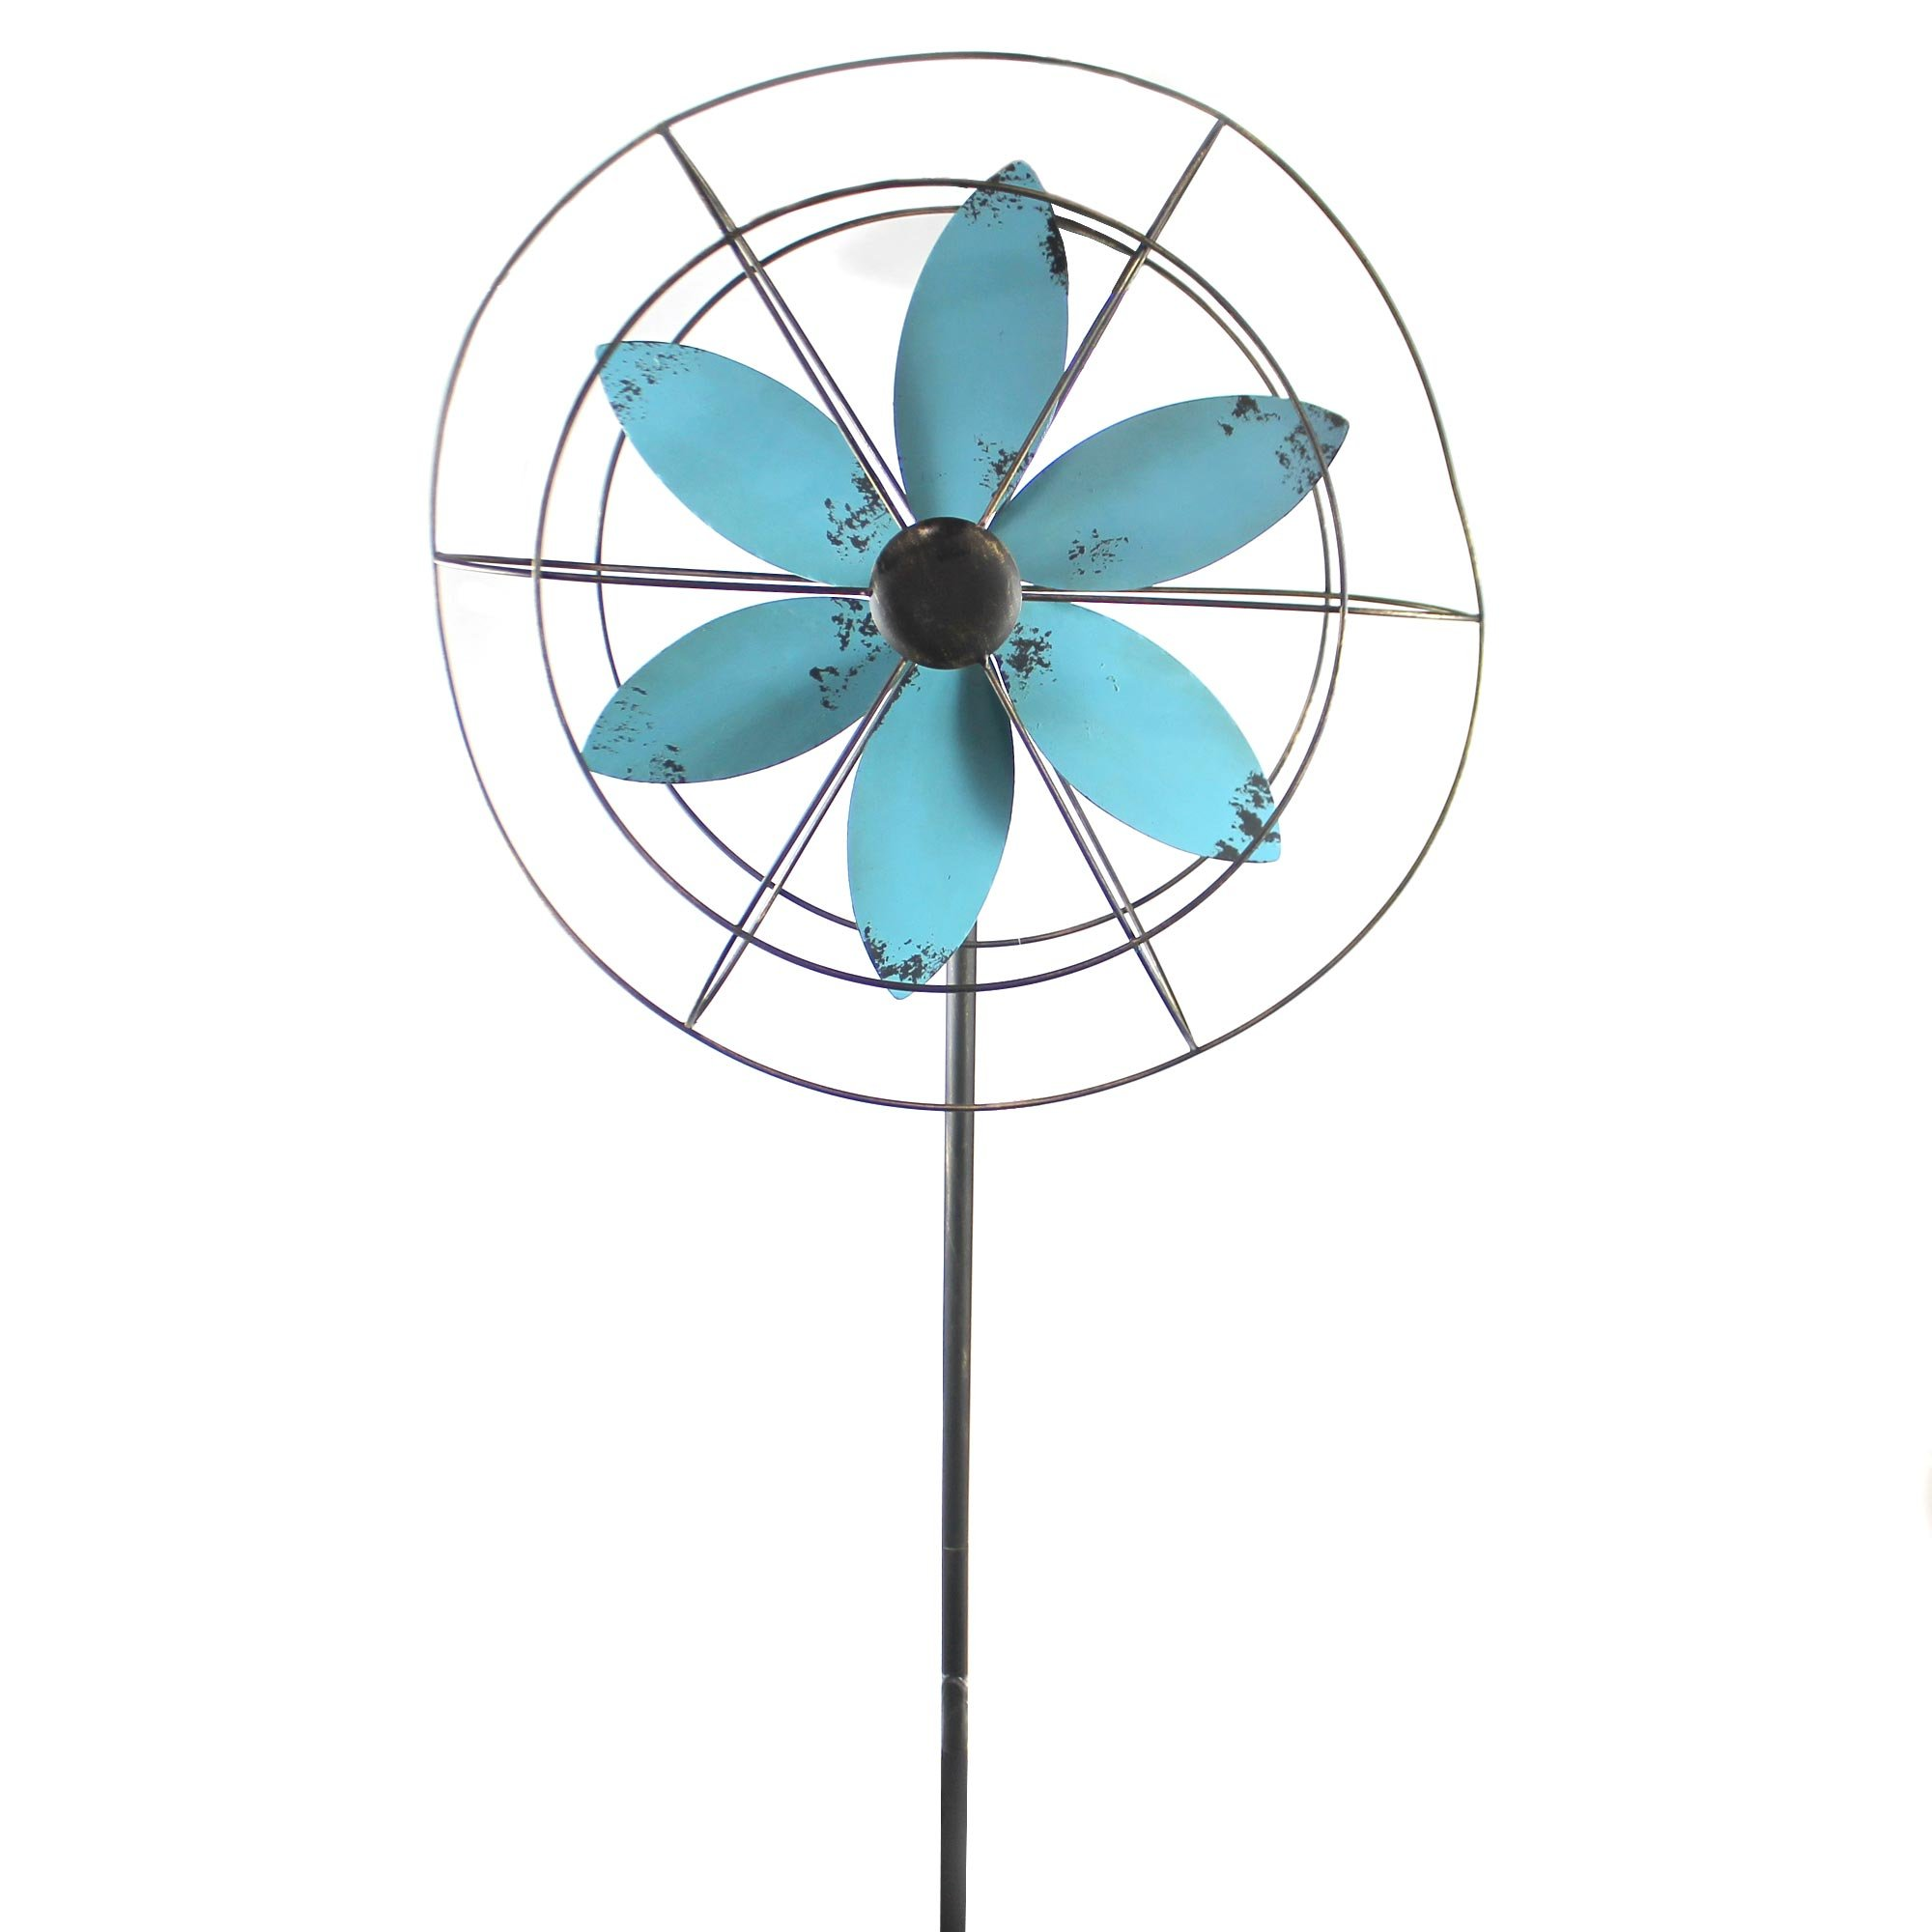 Home & Garden METAL WINDMILL Metal Yard Decoration P9169 Blue